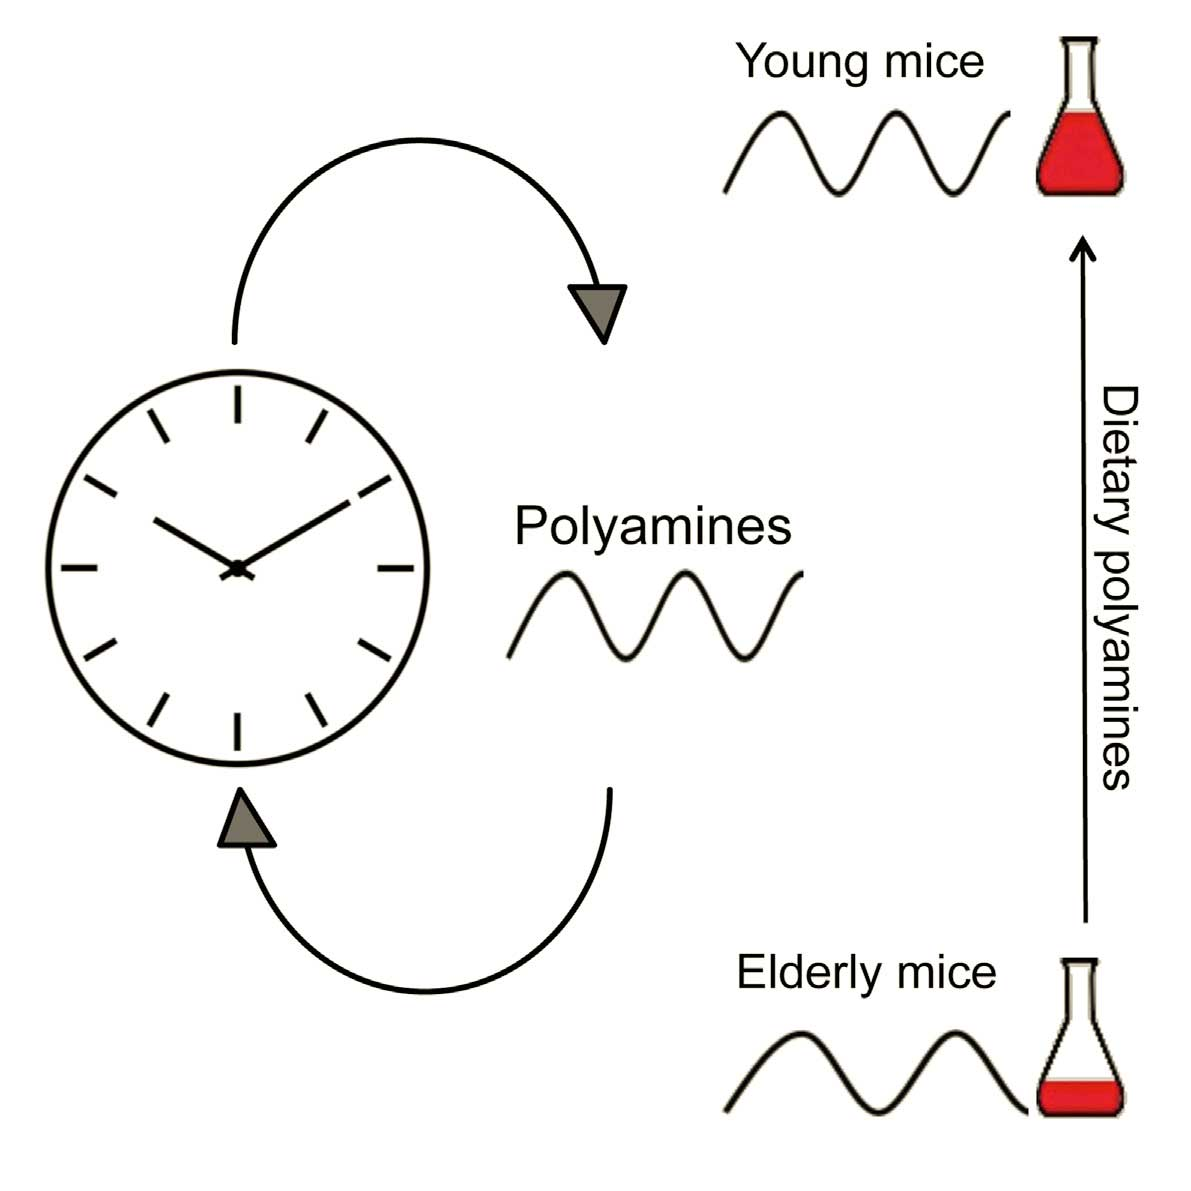 Diet Supplement Keeps Circadian Clock From Slowing Down In Aging Mice This Diagram Depicts White Blood Cells With Parts And Labels Graphic How Associated Decline Polyamine Levels Lead To A Correspondingly Longer Period Which Can Be Reversed By Dietary